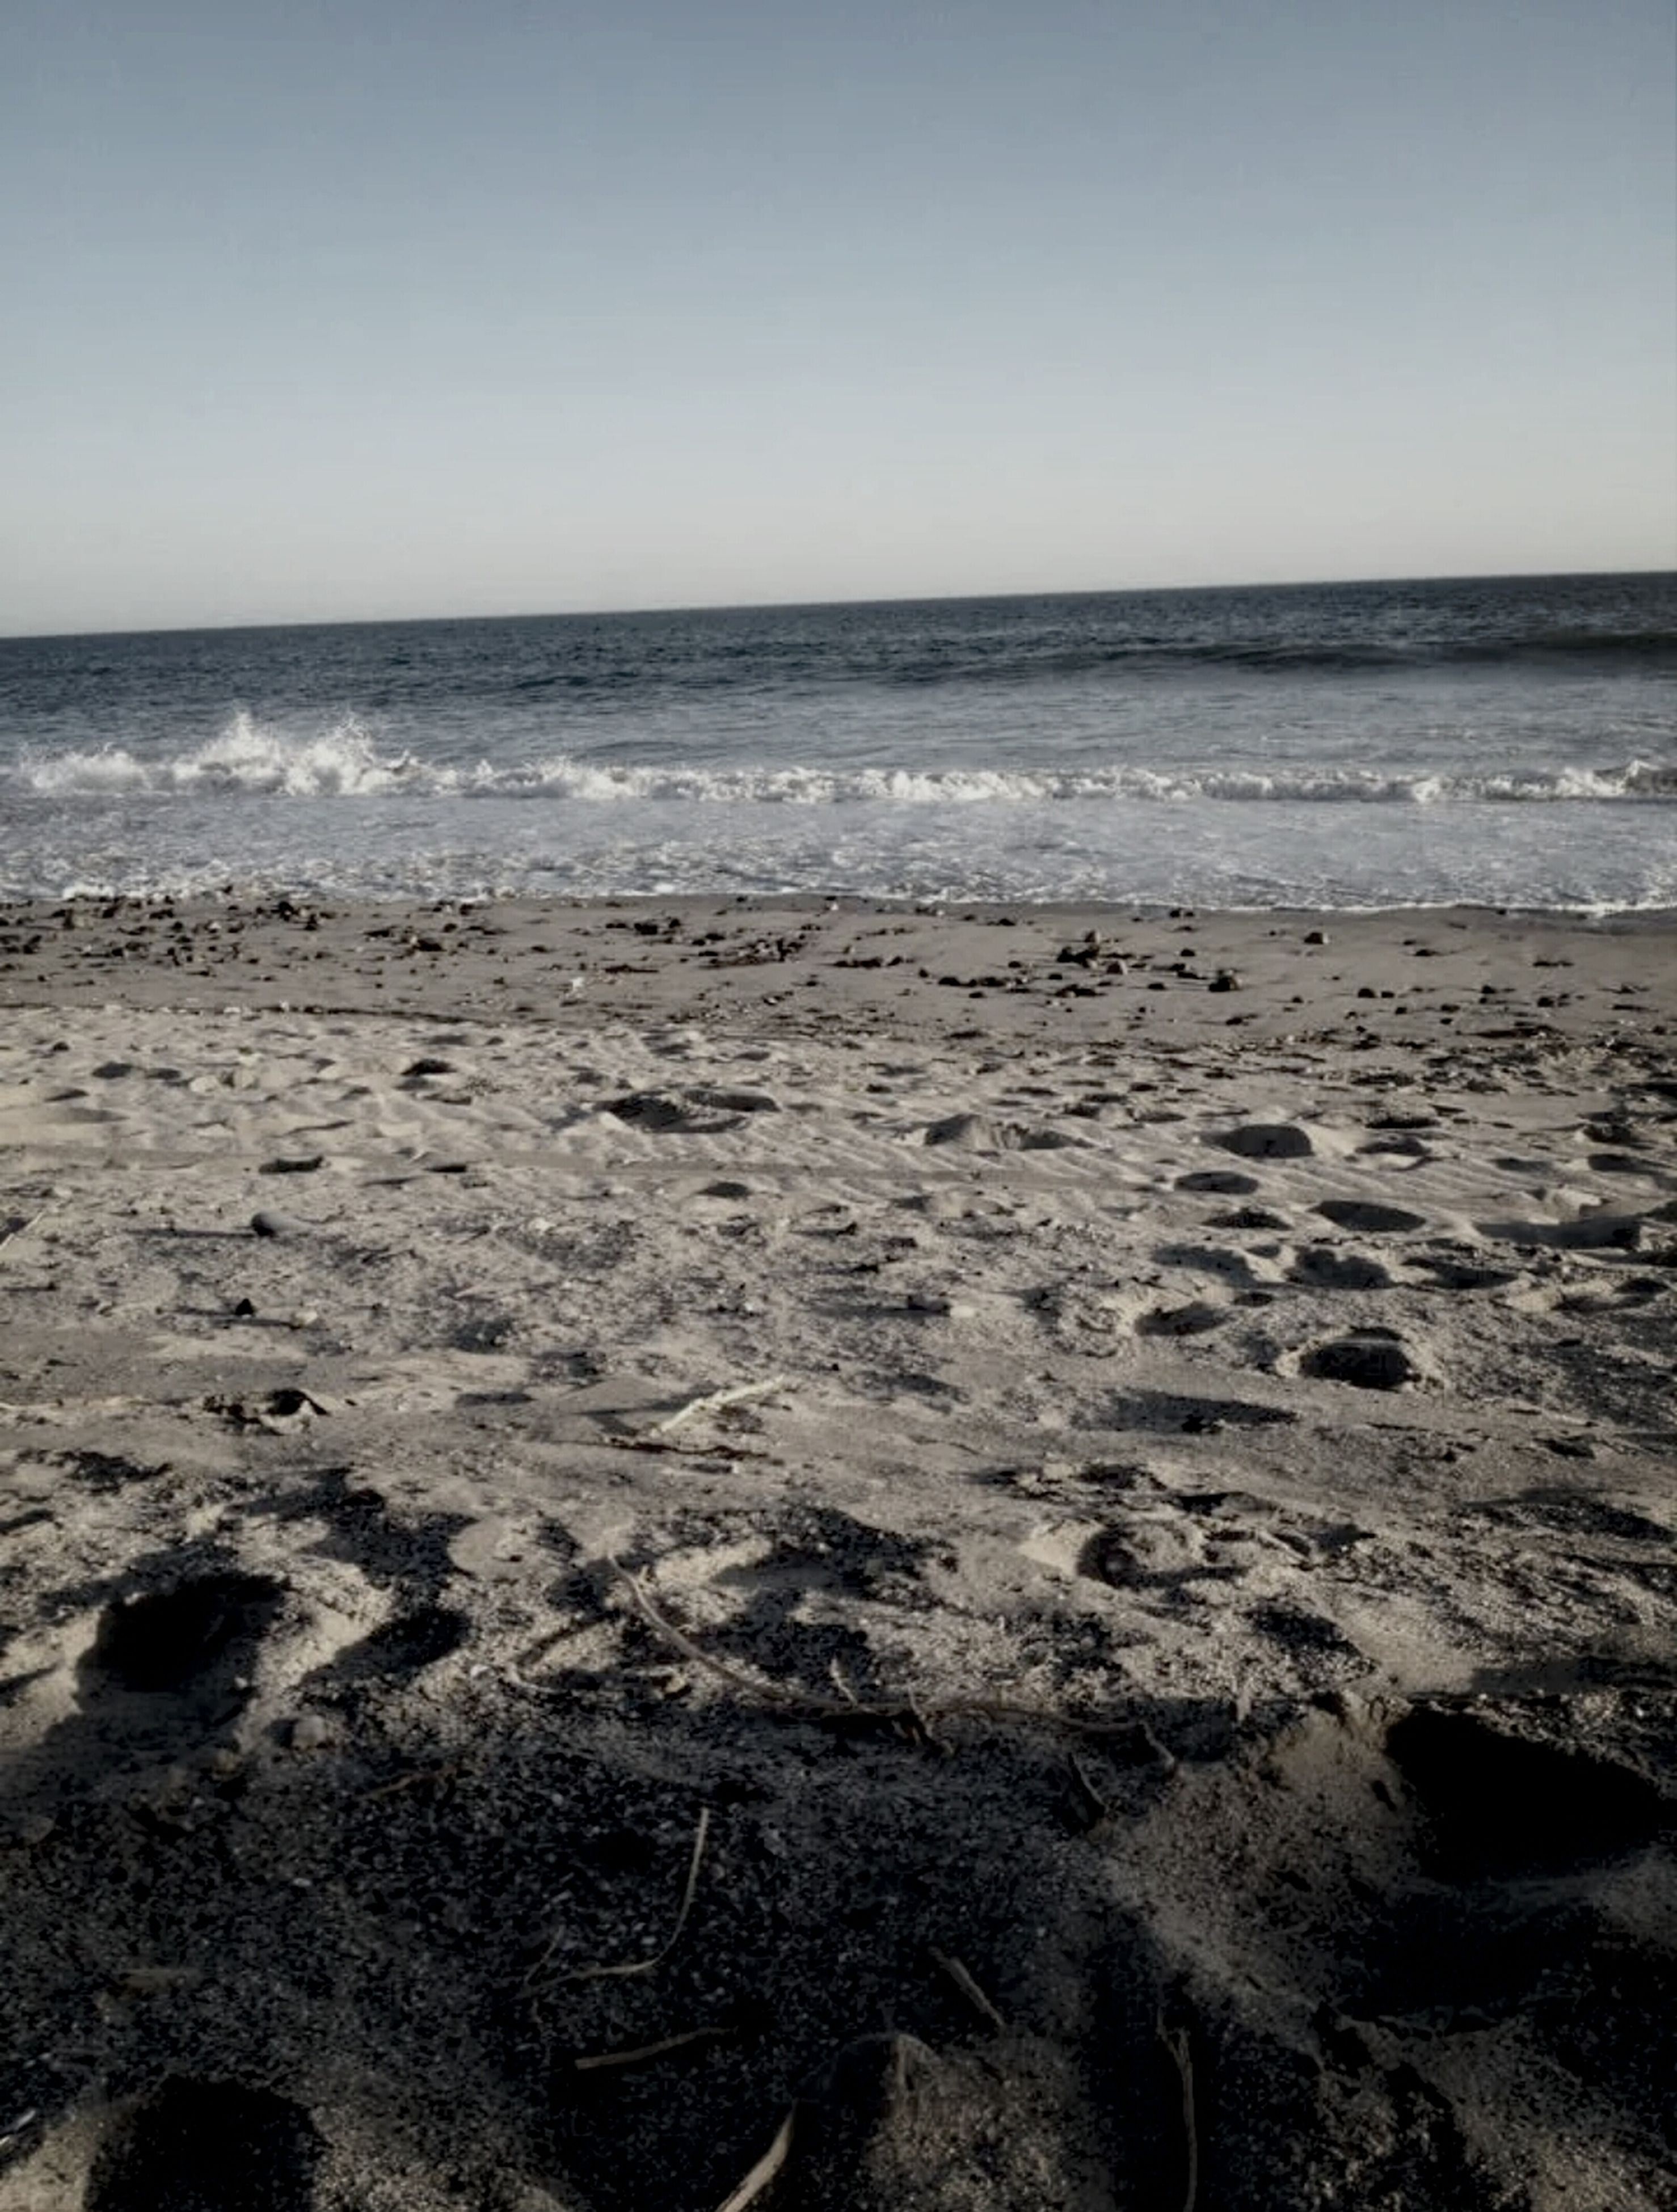 beach, sea, horizon over water, sand, shore, water, clear sky, tranquility, tranquil scene, scenics, beauty in nature, copy space, nature, wave, sky, surf, coastline, idyllic, remote, footprint